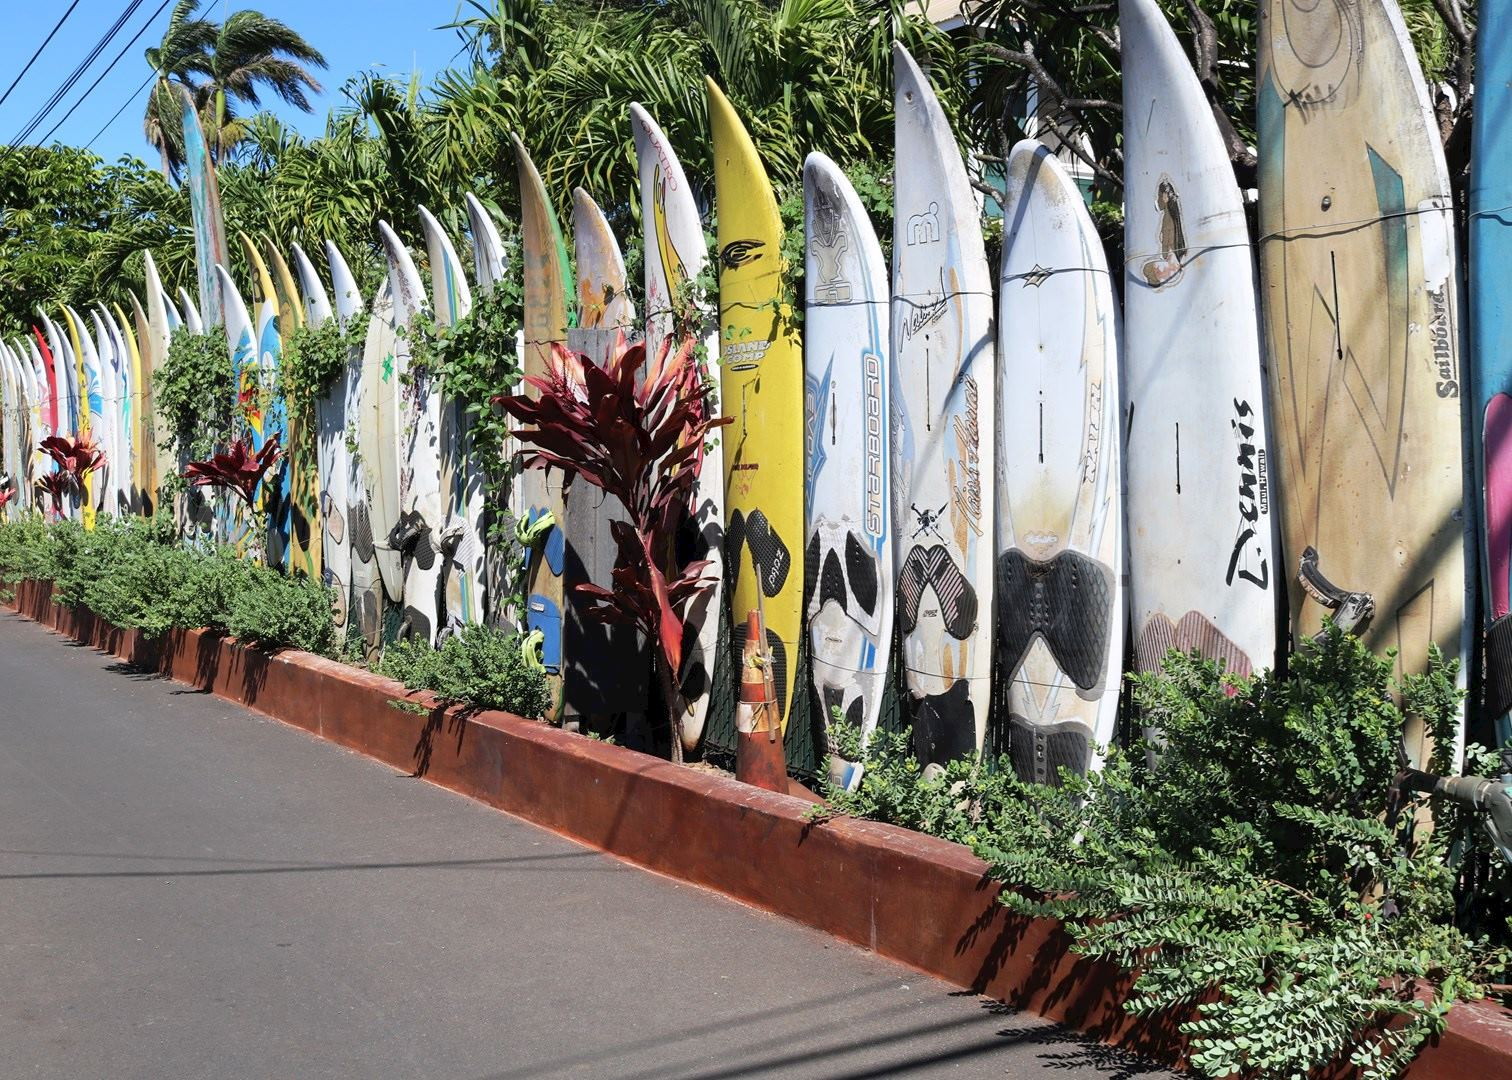 Visit Maui on a trip to Hawaii | Audley Travel